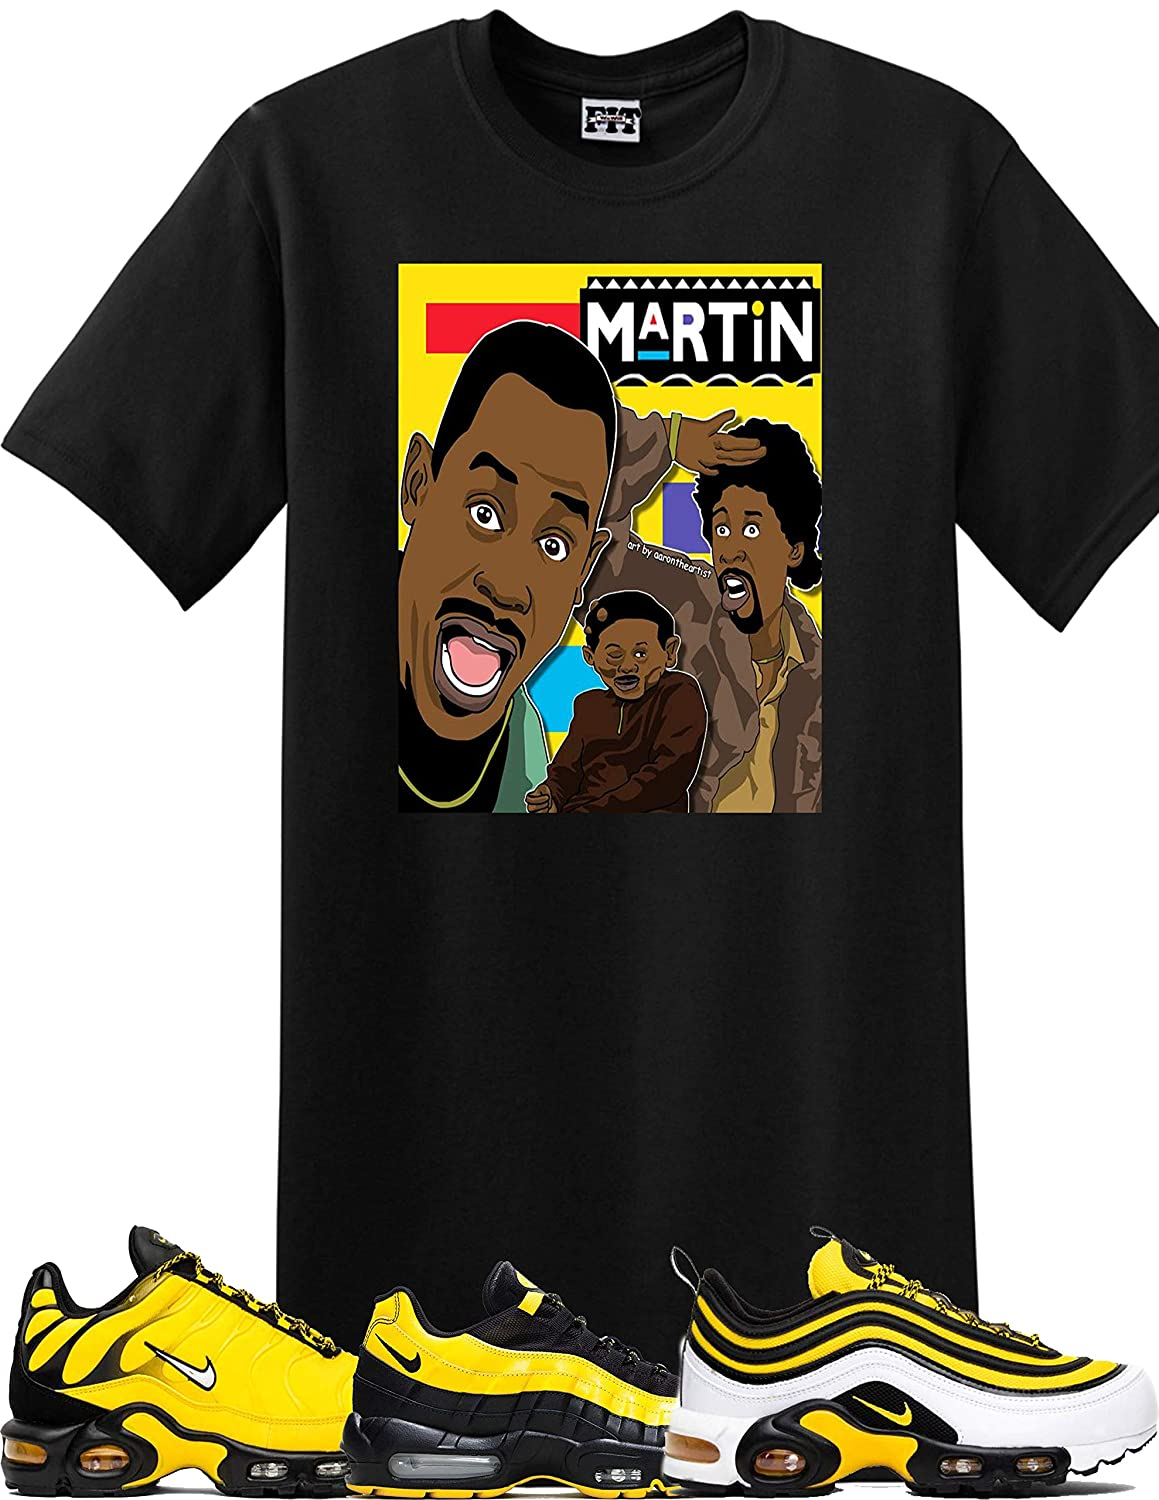 quality design 6fd37 d5682 We Will Fit Martin Shirt to Match The Nike Air Max 95 Yellow Frequency Pack  Tour 97 airmax Plus TN   Amazon.com